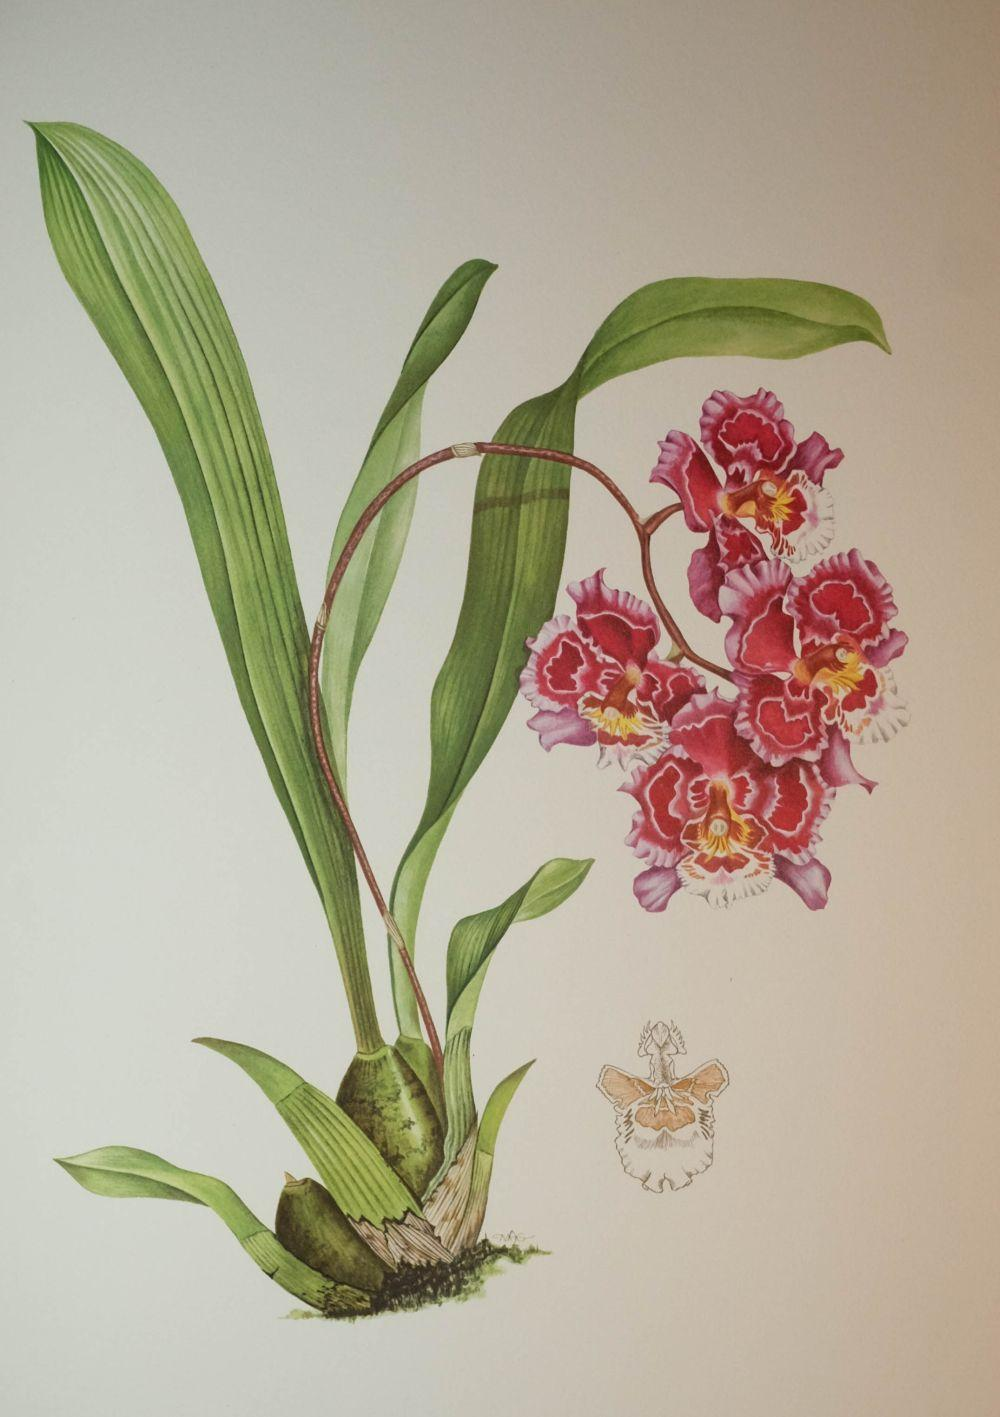 Hunt (P. Francis and Grierson, Mary A.). Orchidaceae, 1973